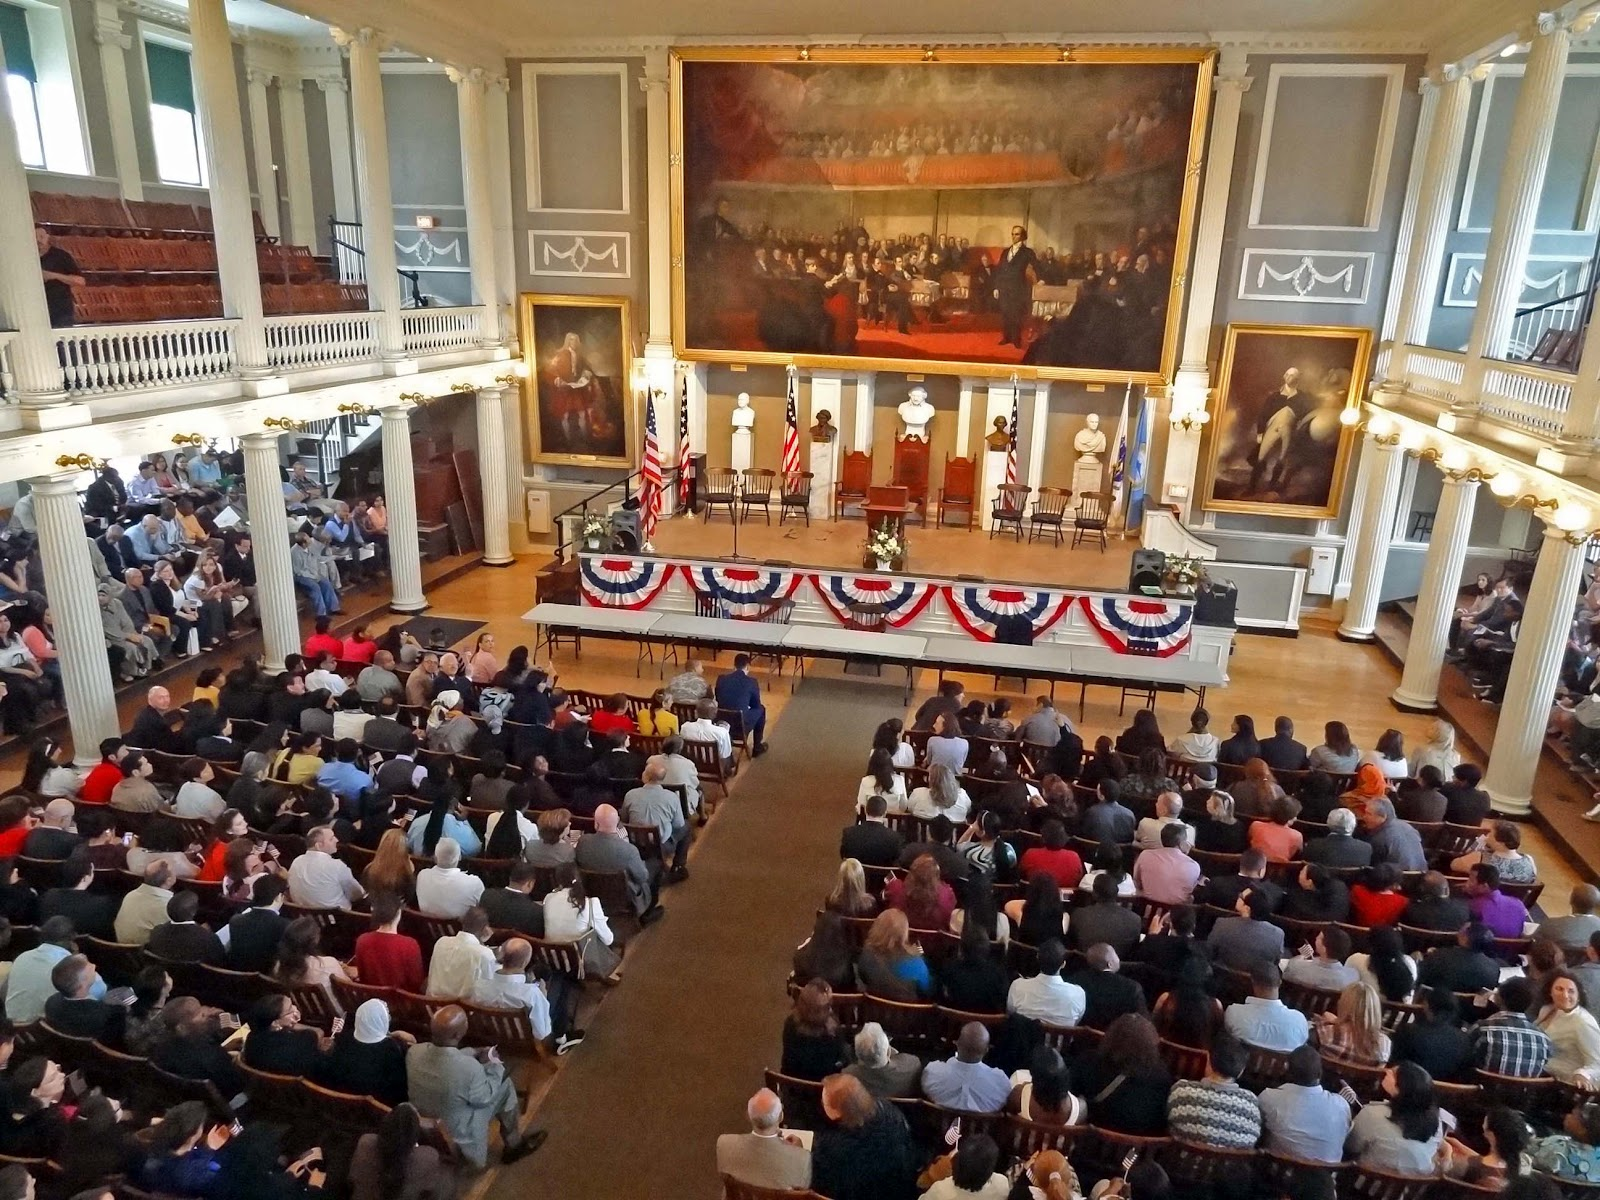 Joe's Retirement Blog: Citizenship Ceremony, Faneuil Hall